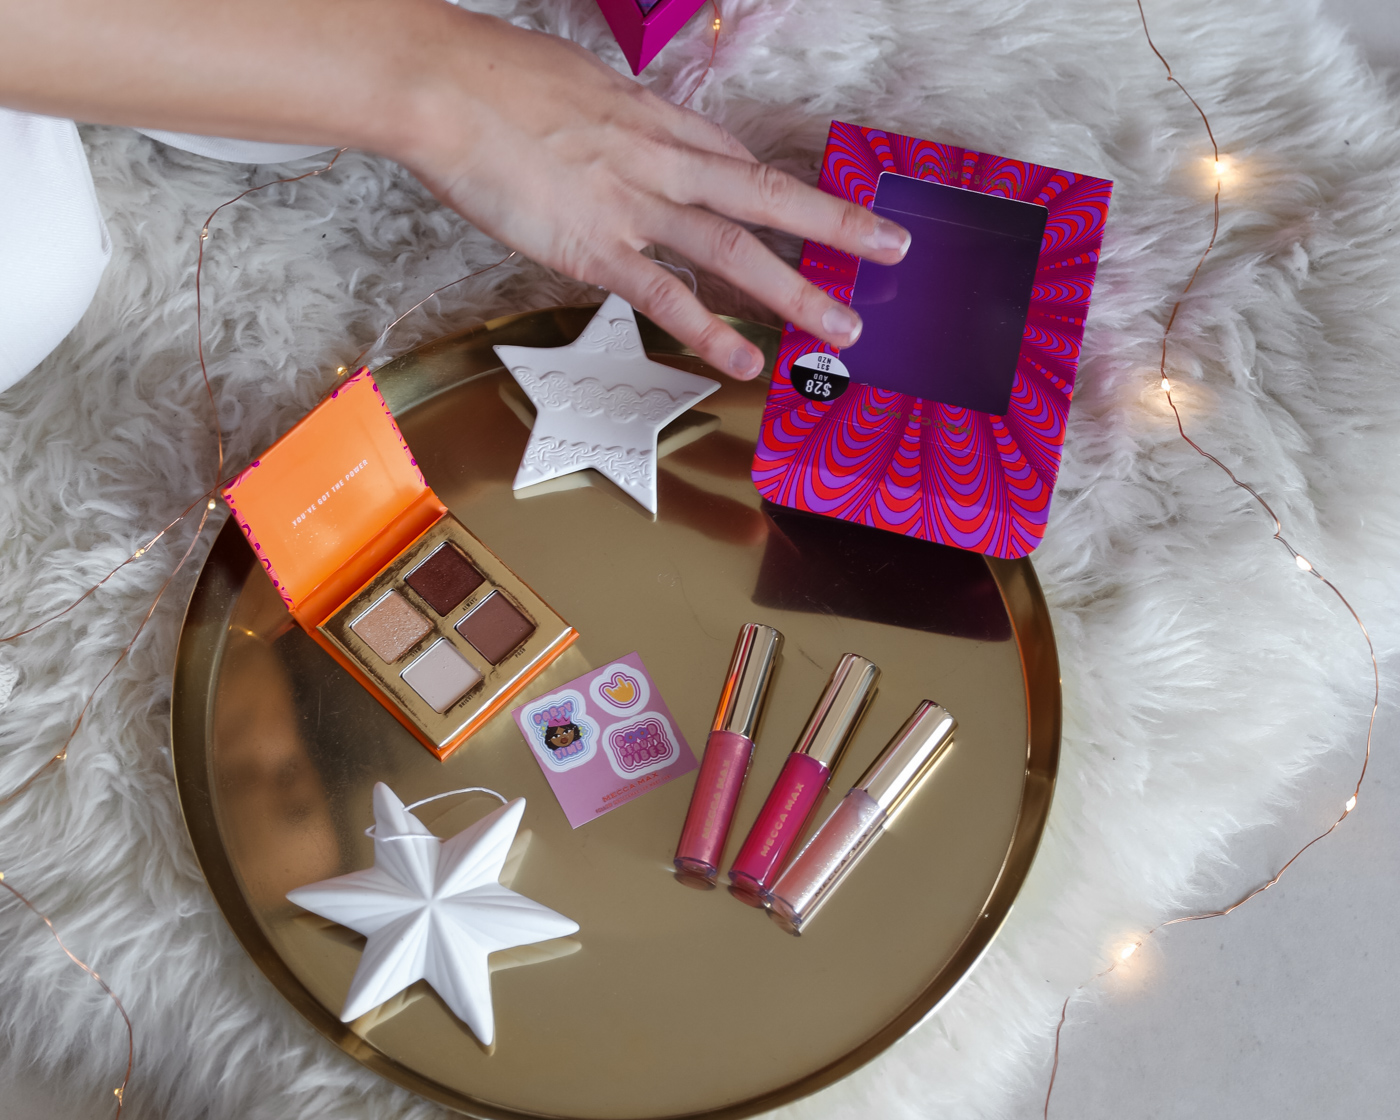 affordable beauty brand Mecca Max Christmas gift ideas for her